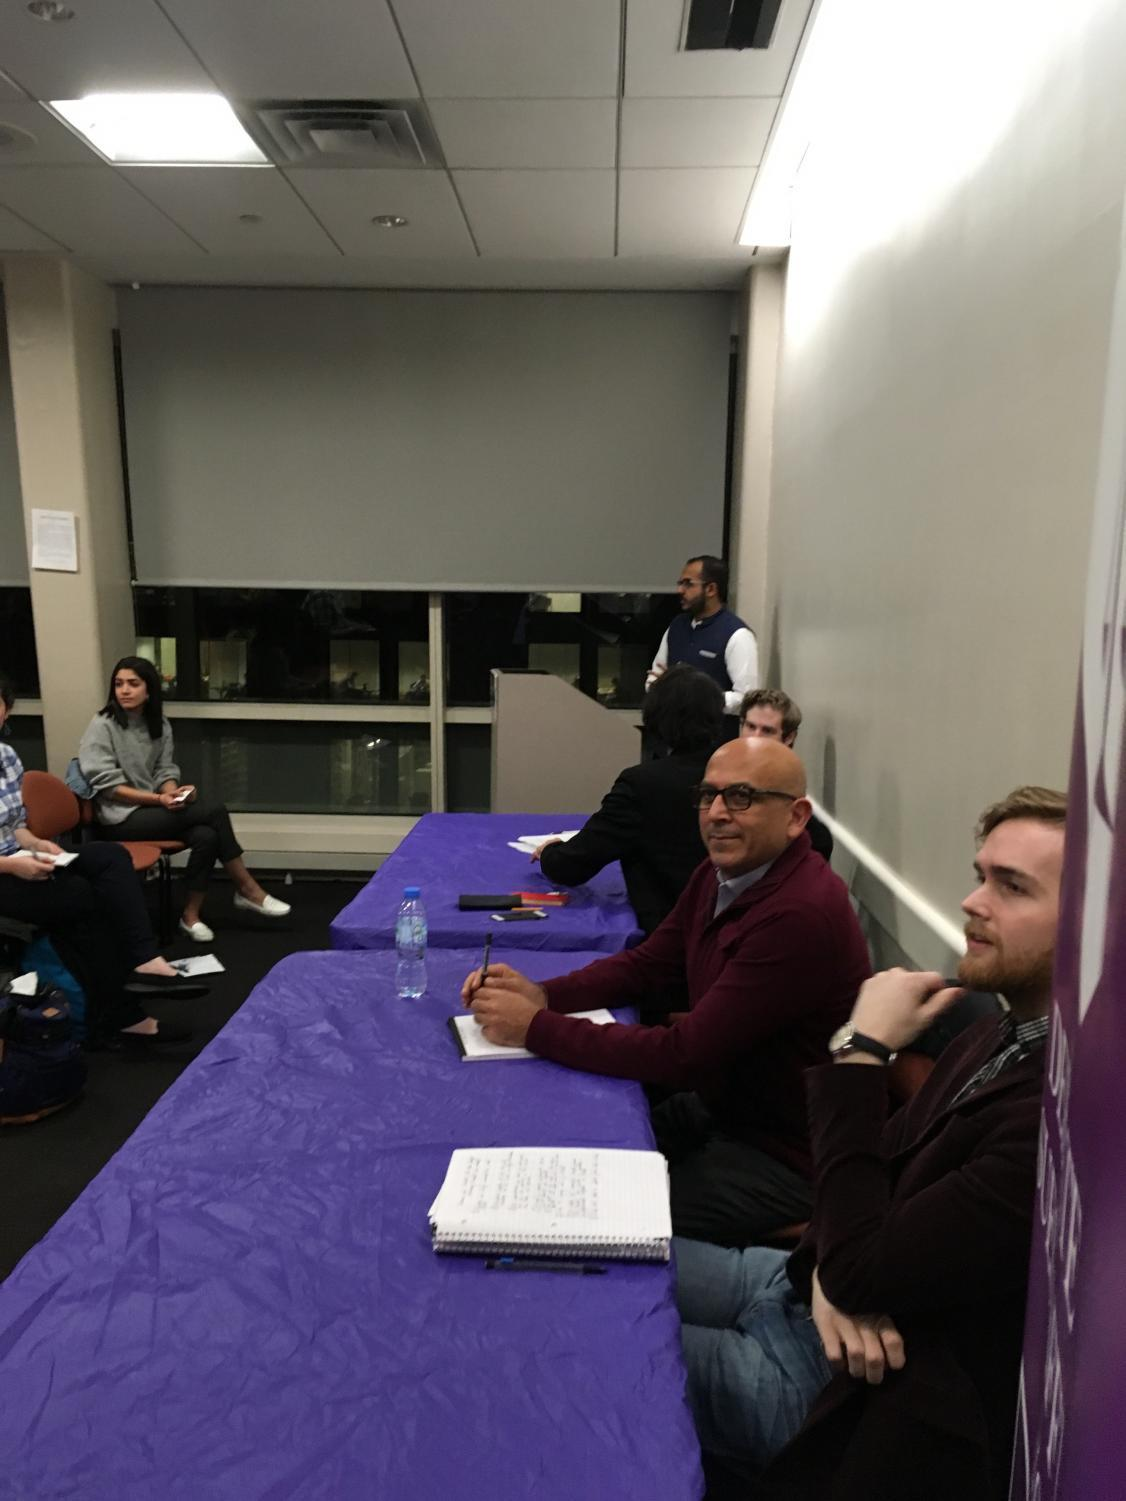 The Review and Debates hosted a discussion about whether or not students thought NYUAD was a mistake.